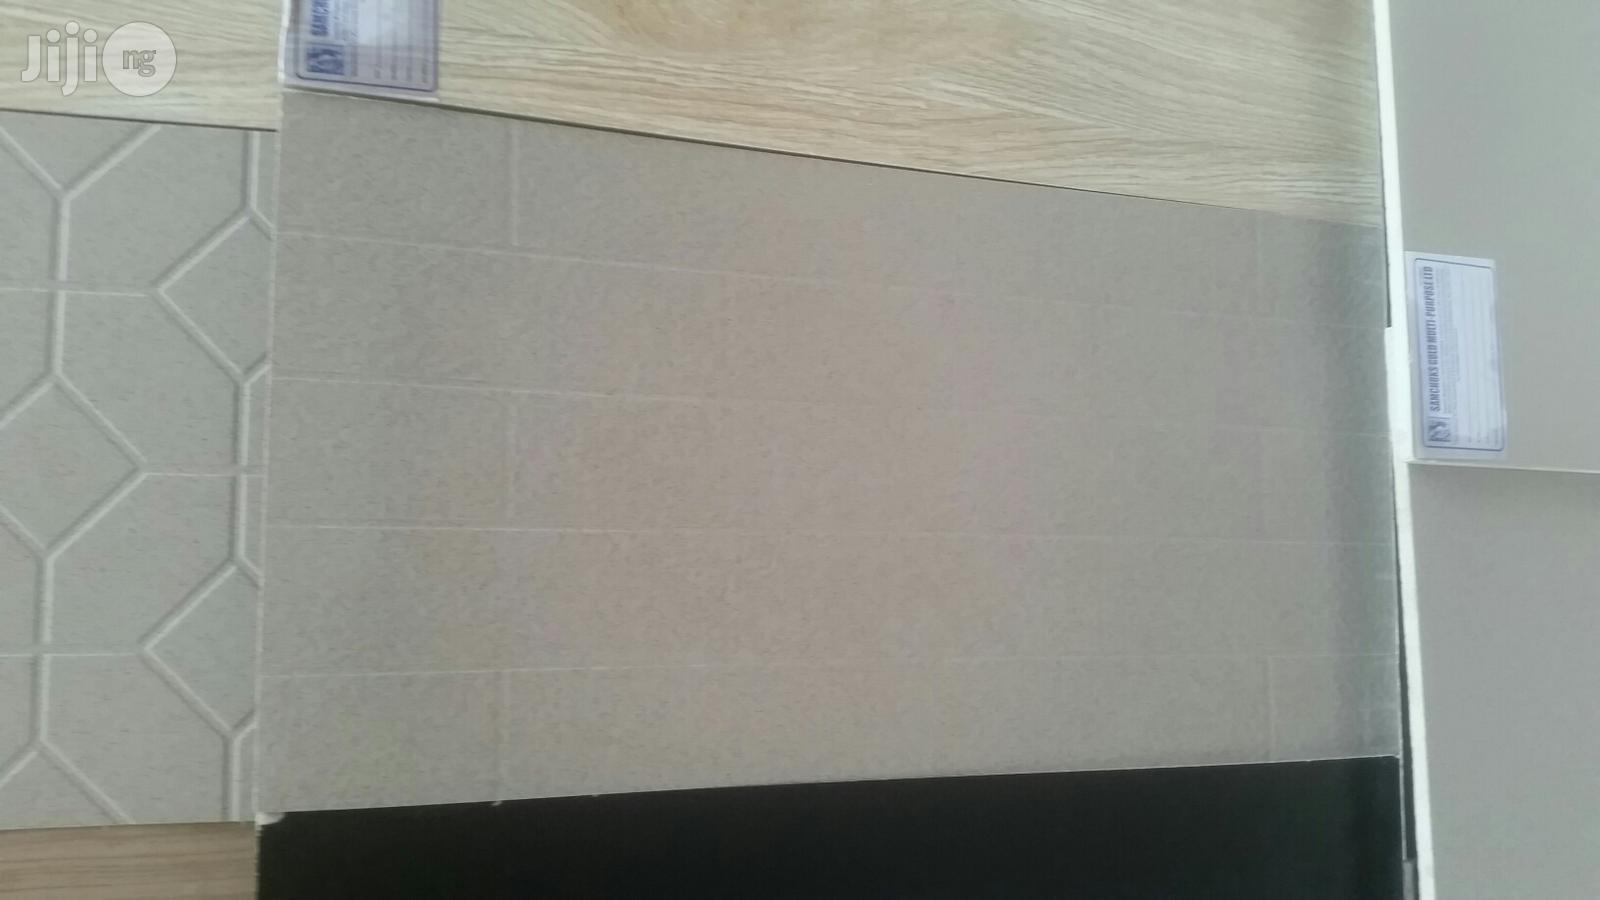 30x60 Step Tiles | Building Materials for sale in Orile, Lagos State, Nigeria